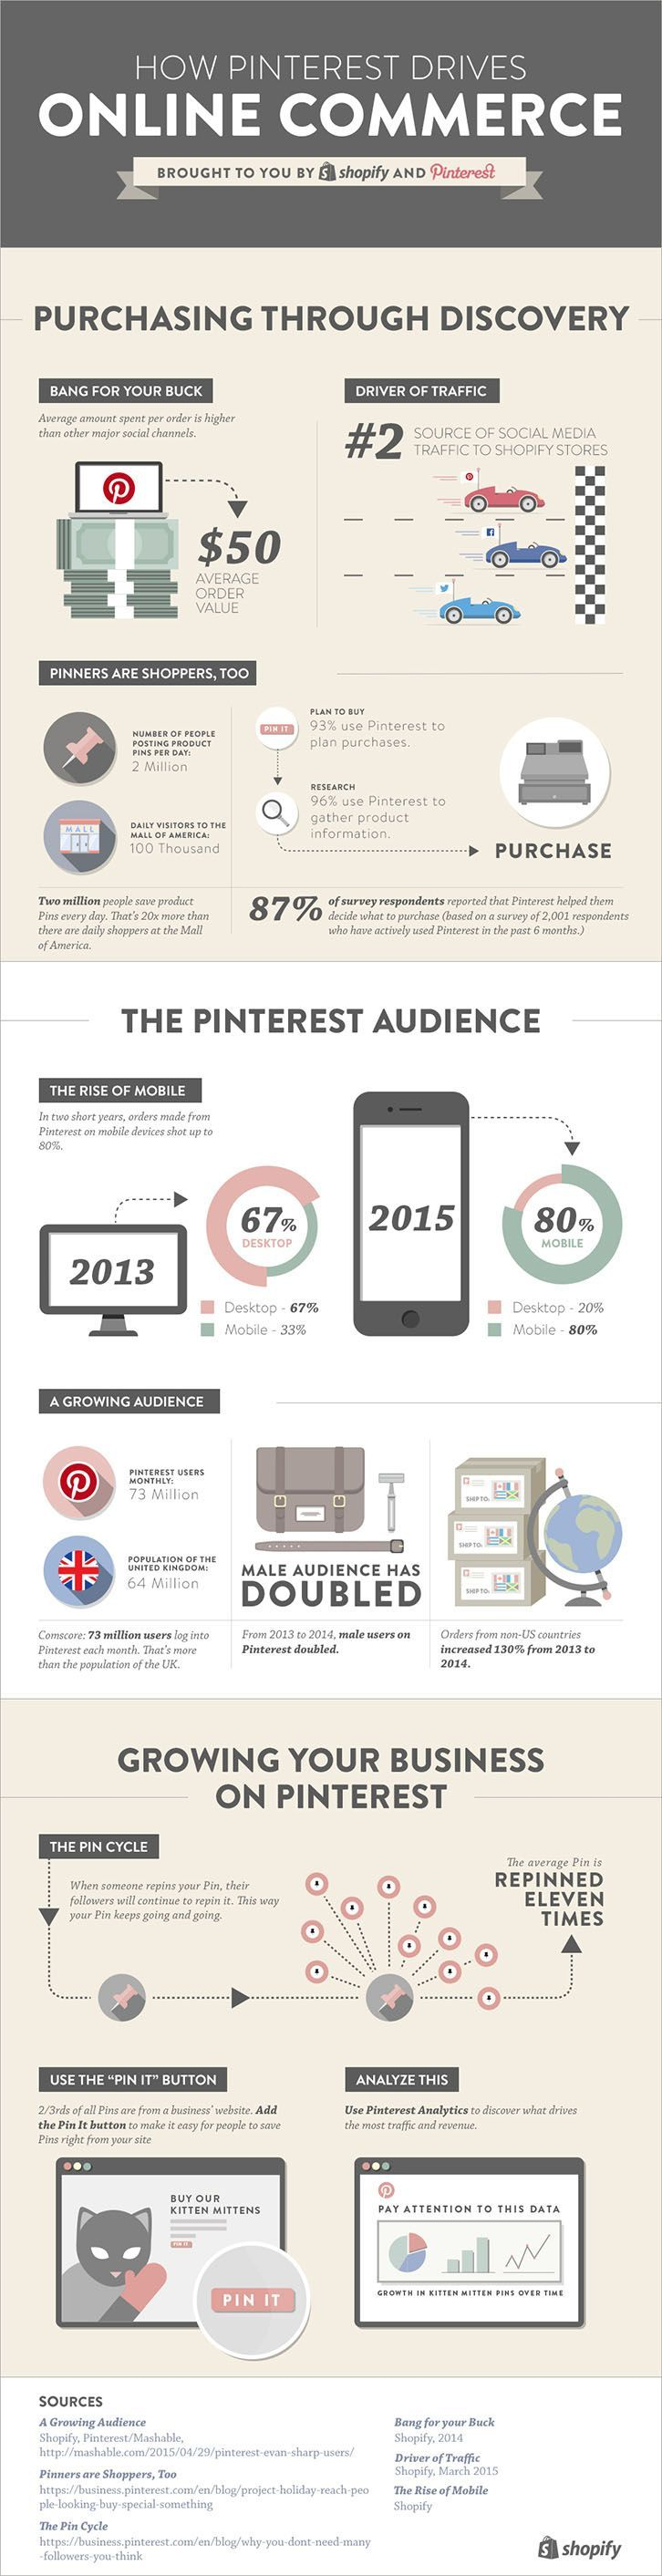 How Pinterest Drives Online Commerce [Infographic] — Ecommerce Marketing Blog - by @Shopify | via @borntobesocial